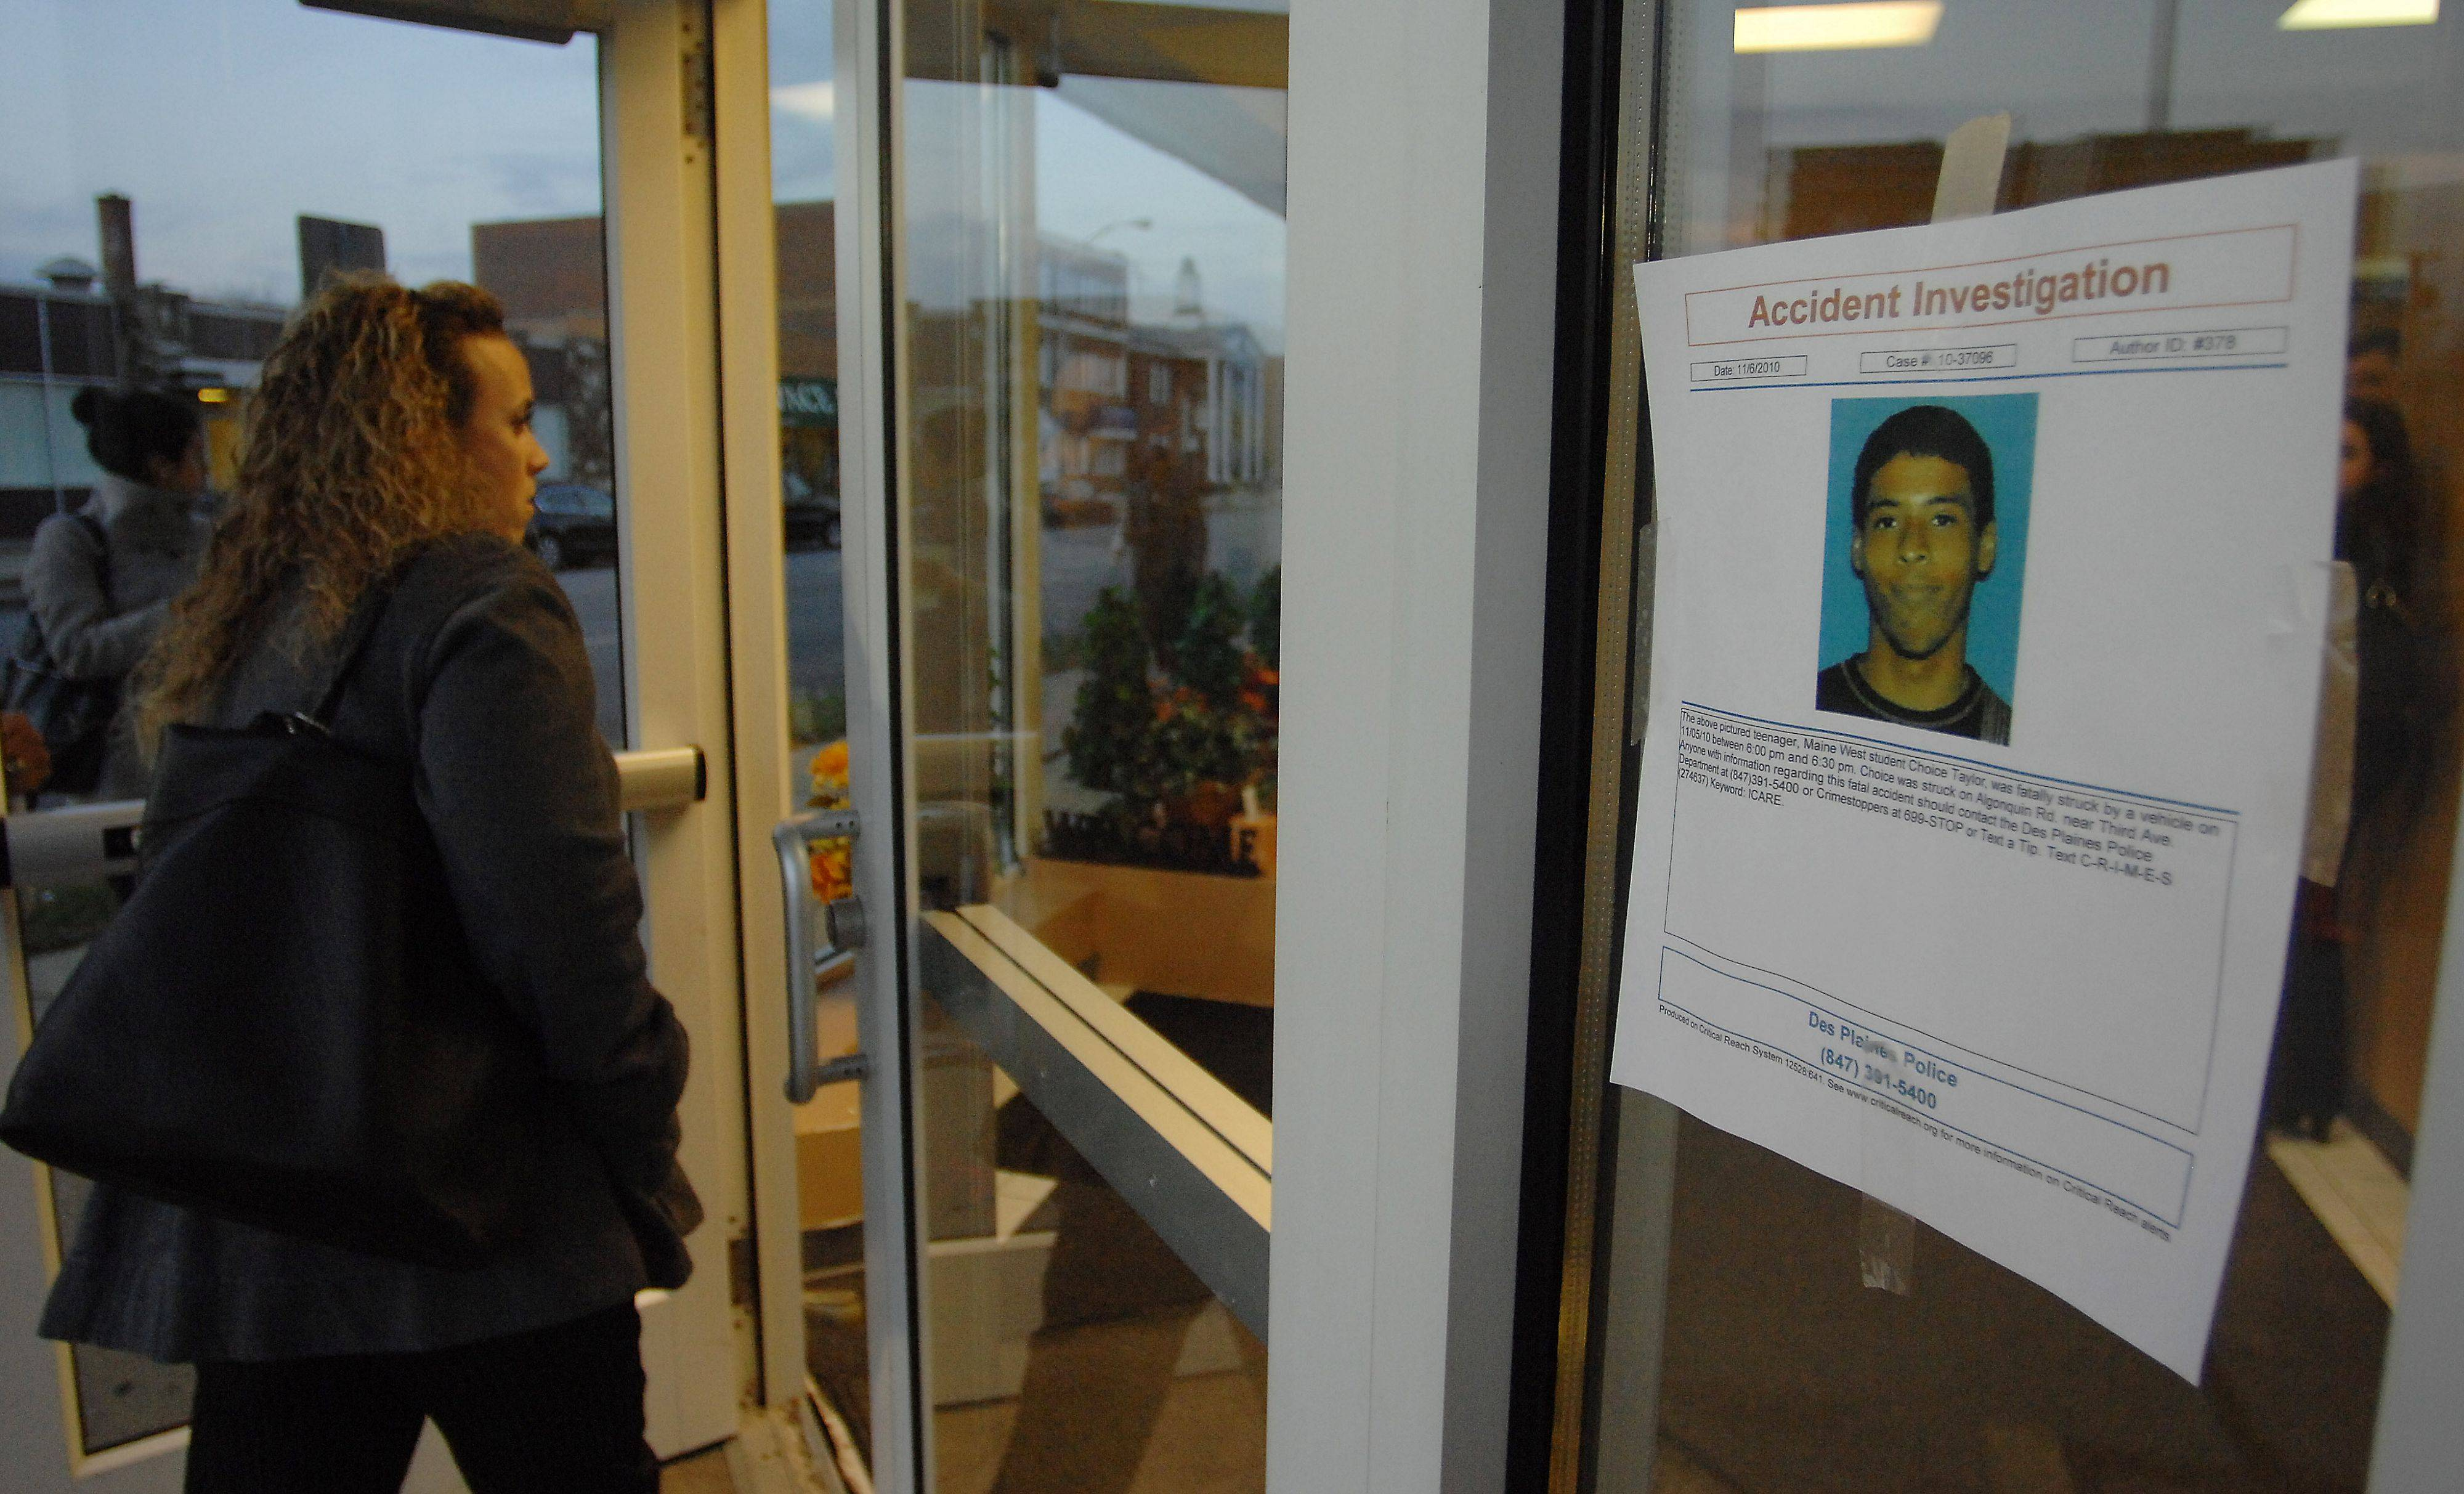 People file into the Good News Christian Center in Des Plaines as a poster taped the window reminds visitors the people are still looking for the truck driver.